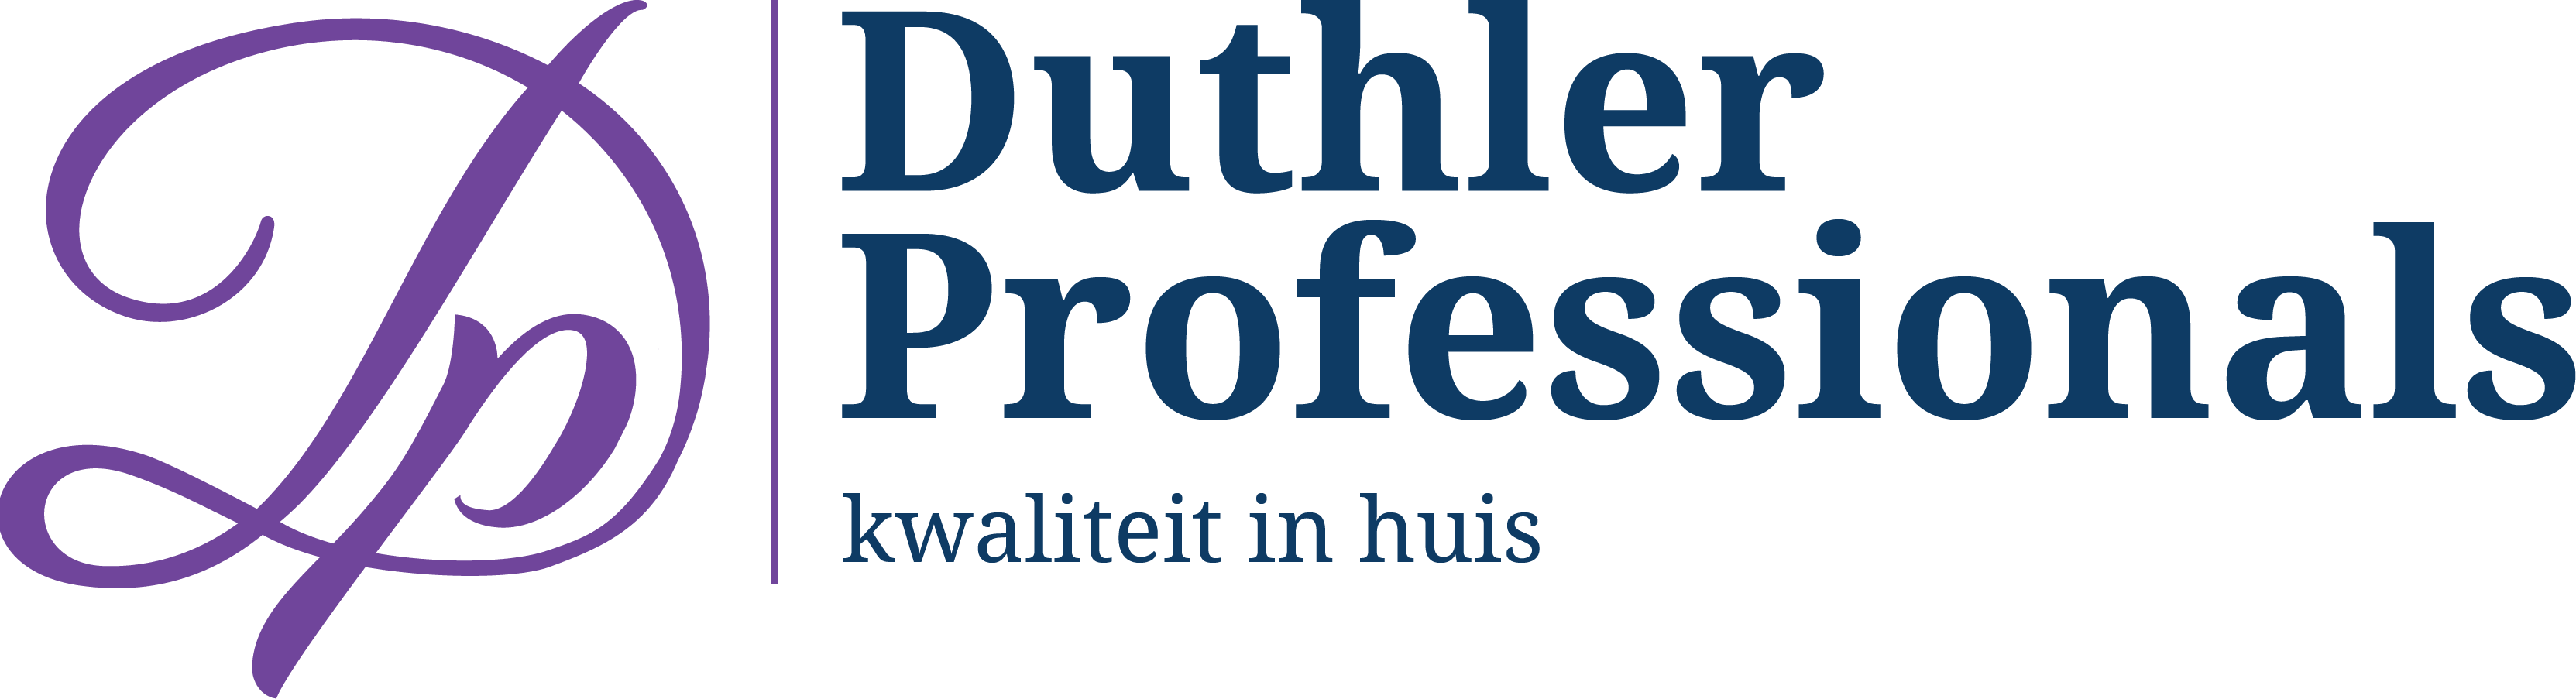 Website Duthler Professionals